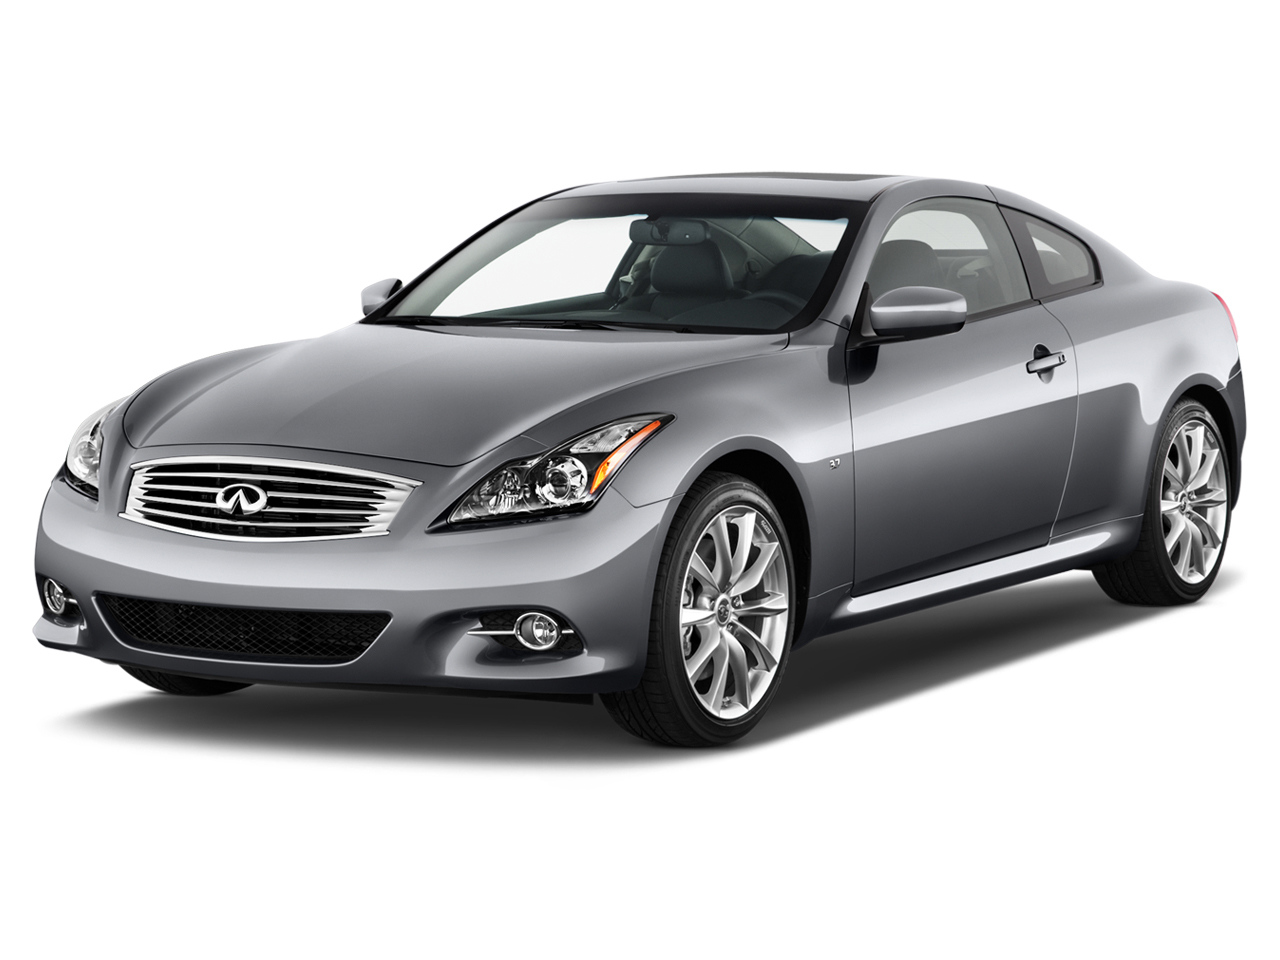 new and used infiniti q60 prices photos reviews specs the car connection. Black Bedroom Furniture Sets. Home Design Ideas